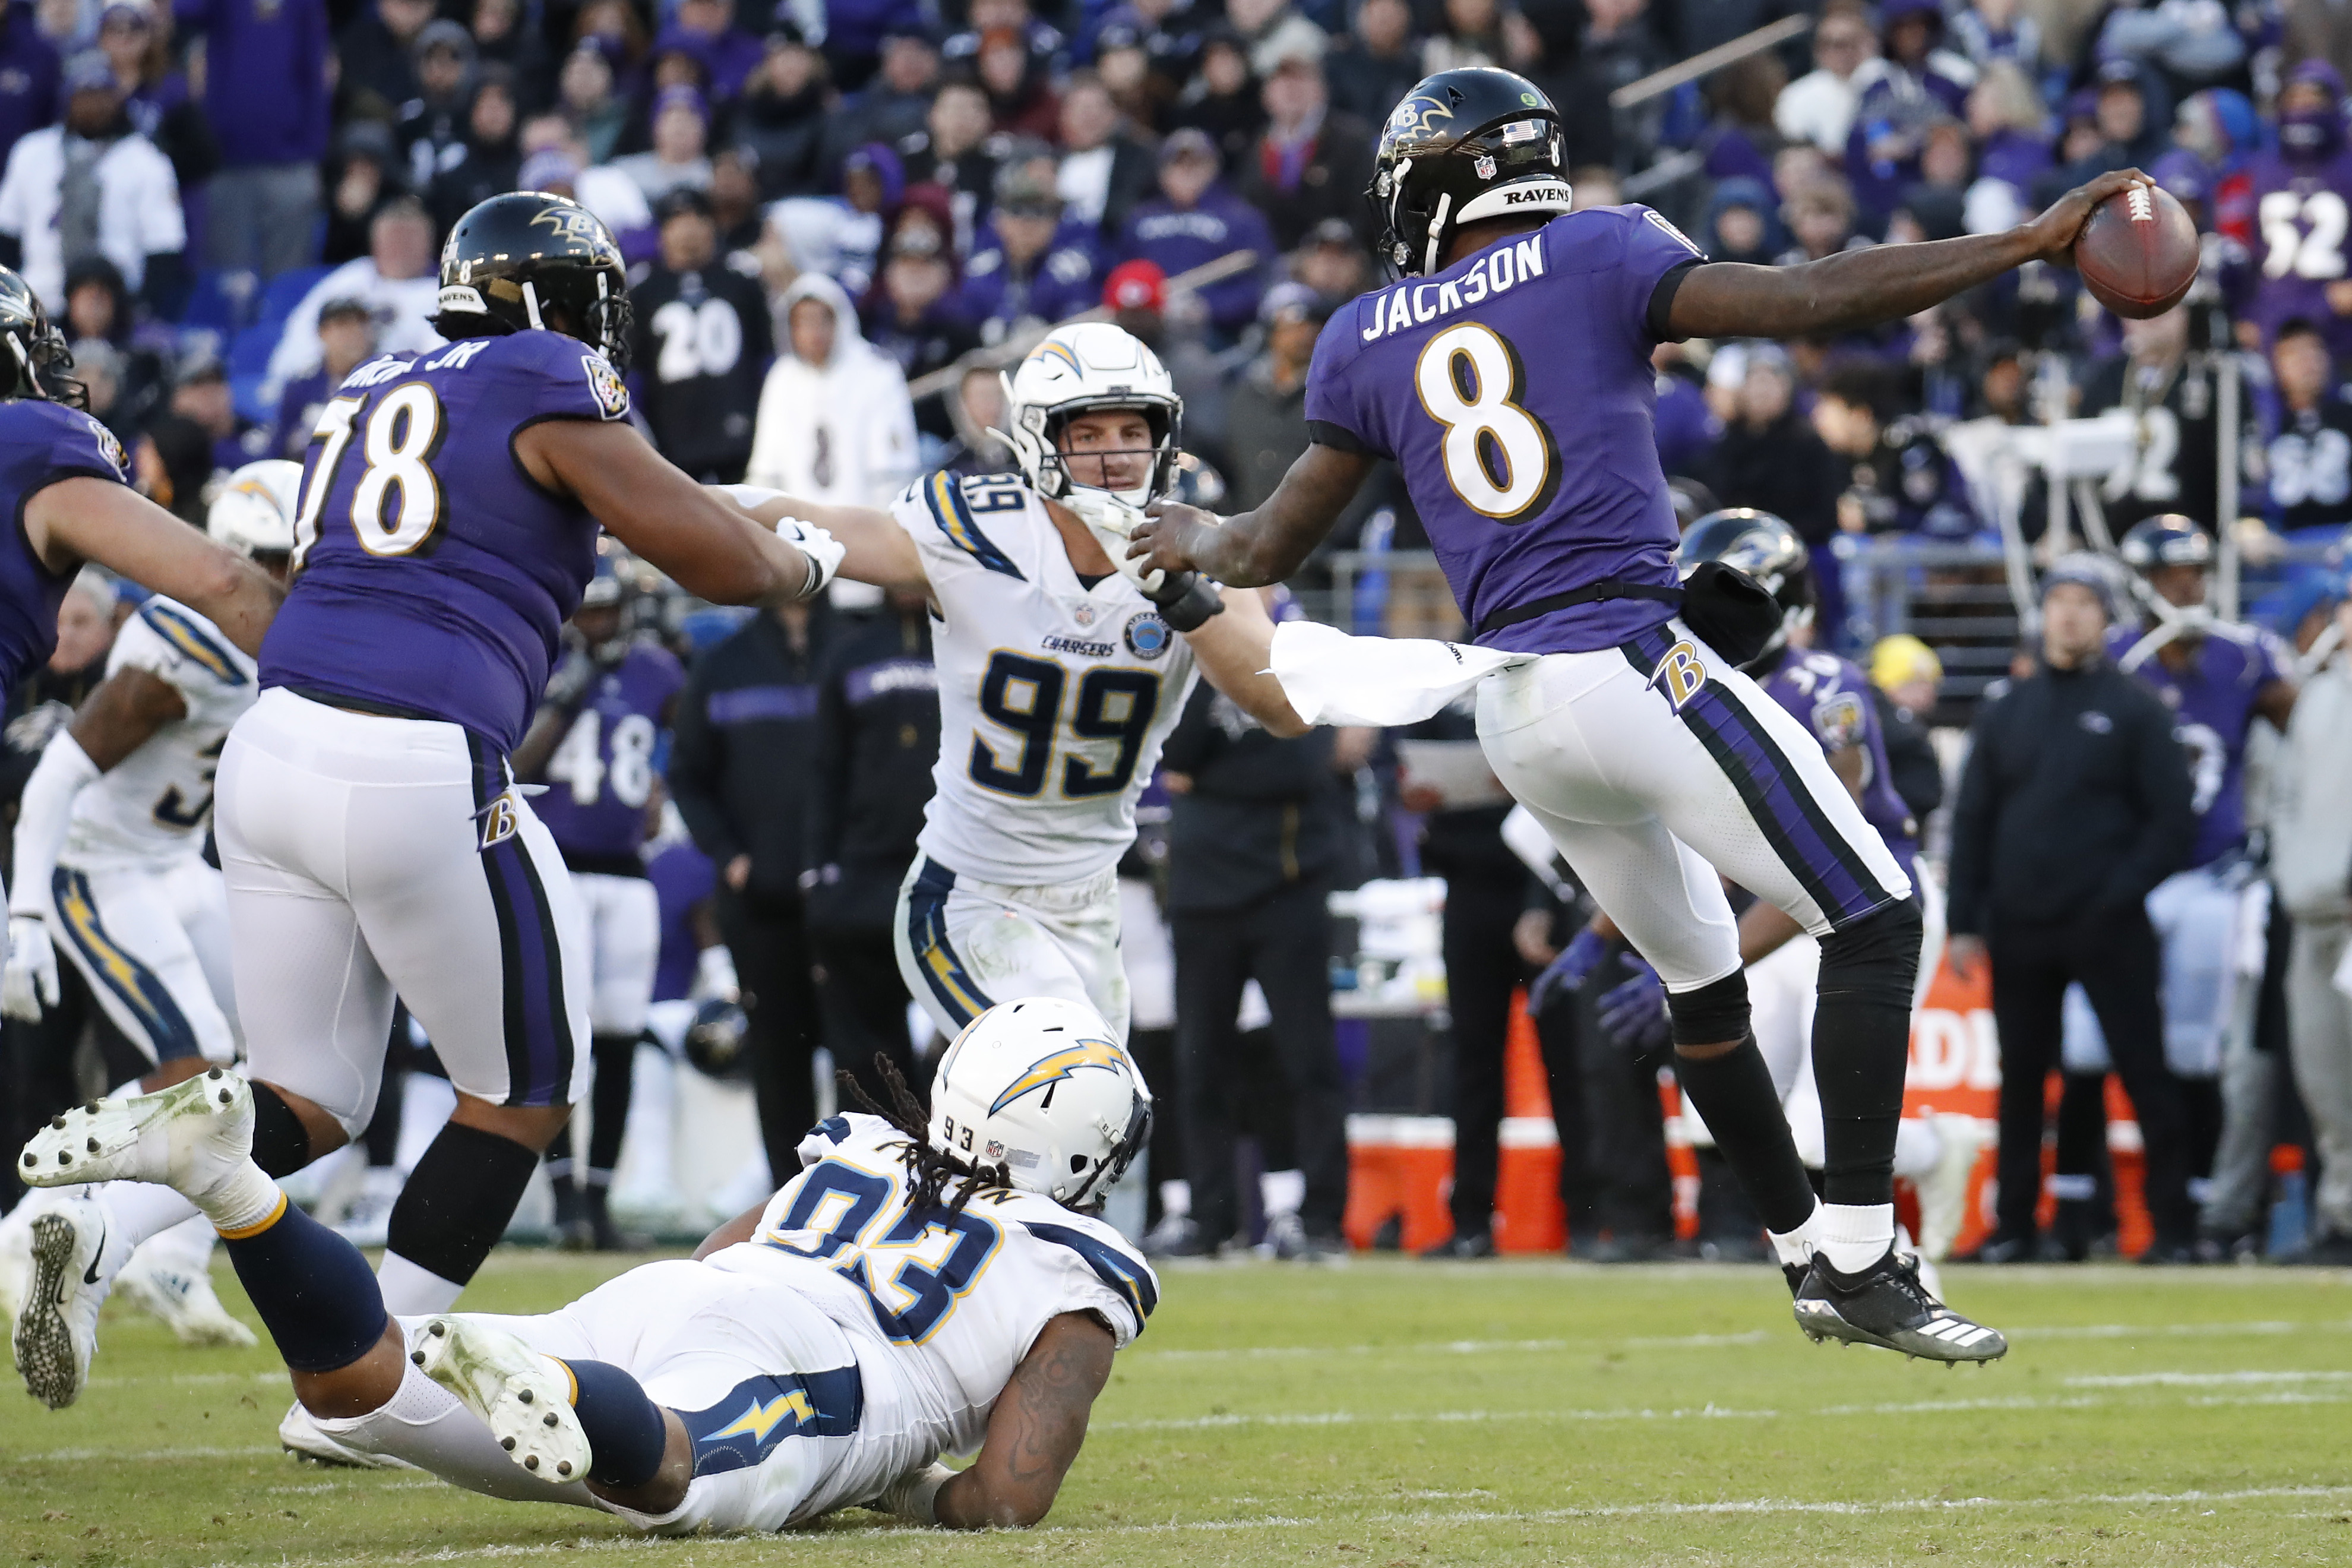 Baltimore Ravens quarterback Lamar Jackson (8) scrambles from Los Angeles Chargers defensive tackle Darius Philon (93) and Chargers defensive end Joey Bosa (99) in the fourth quarter in a AFC Wild Card playoff football game at M&T Bank Stadium. The Chargers won 23-17.